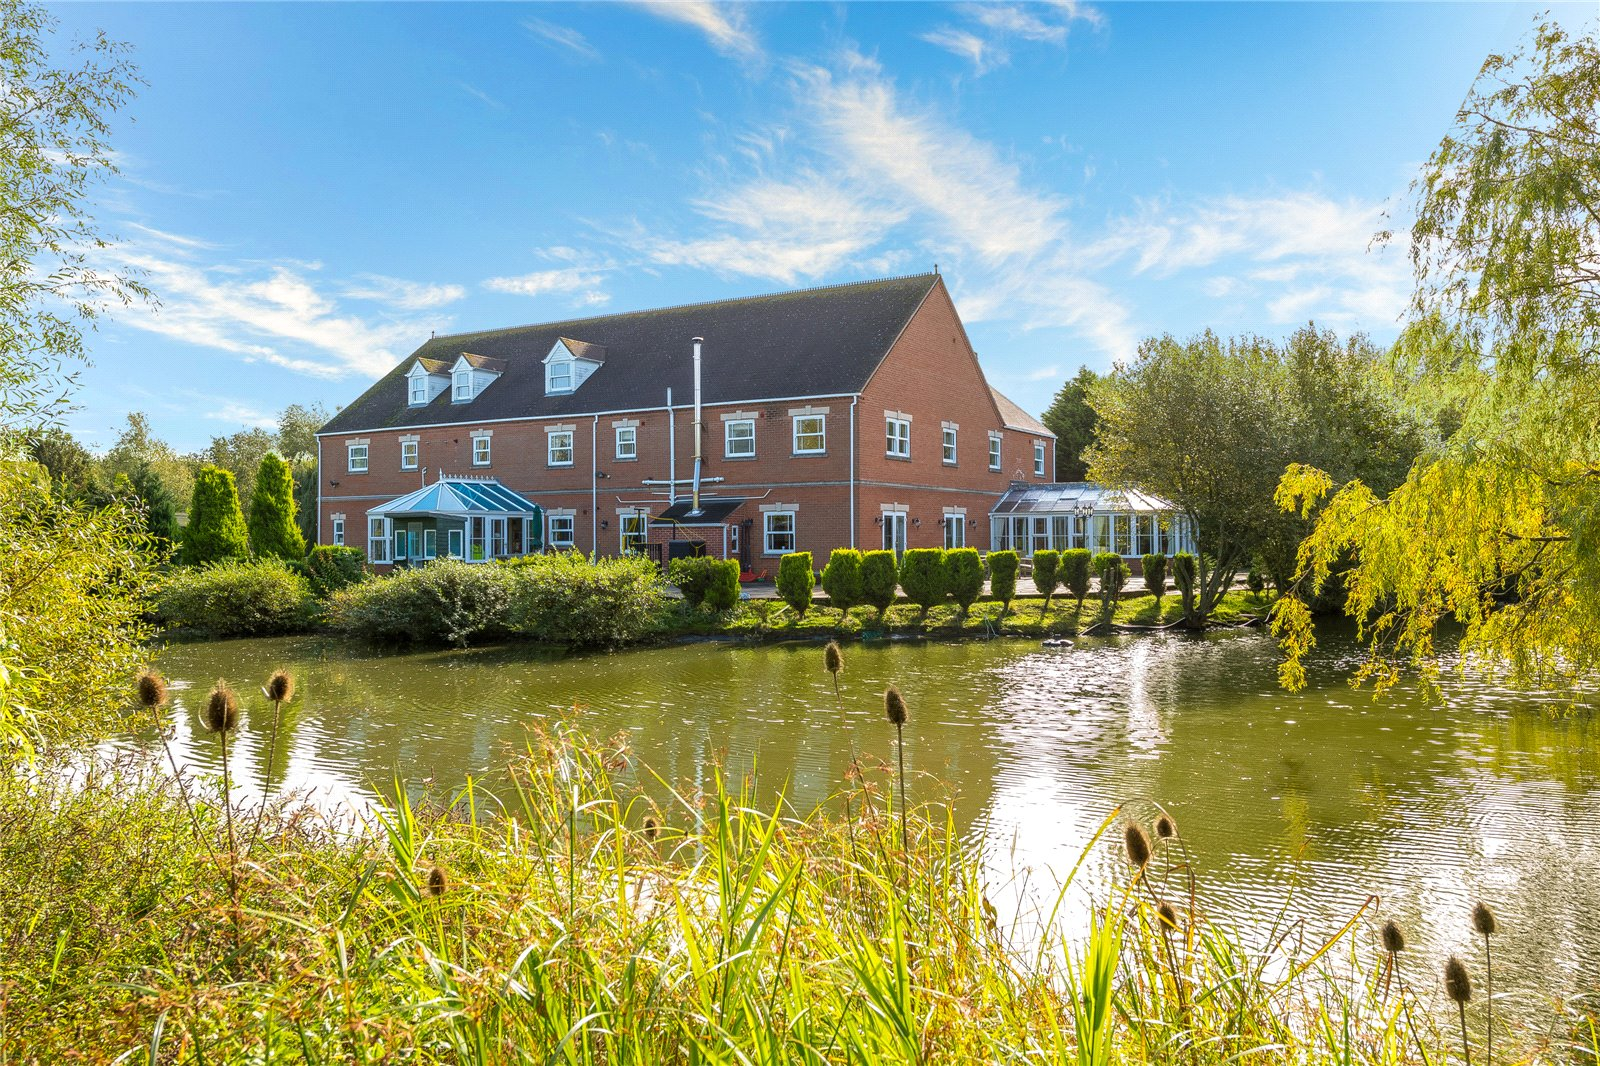 large family home waterside lake countryside property